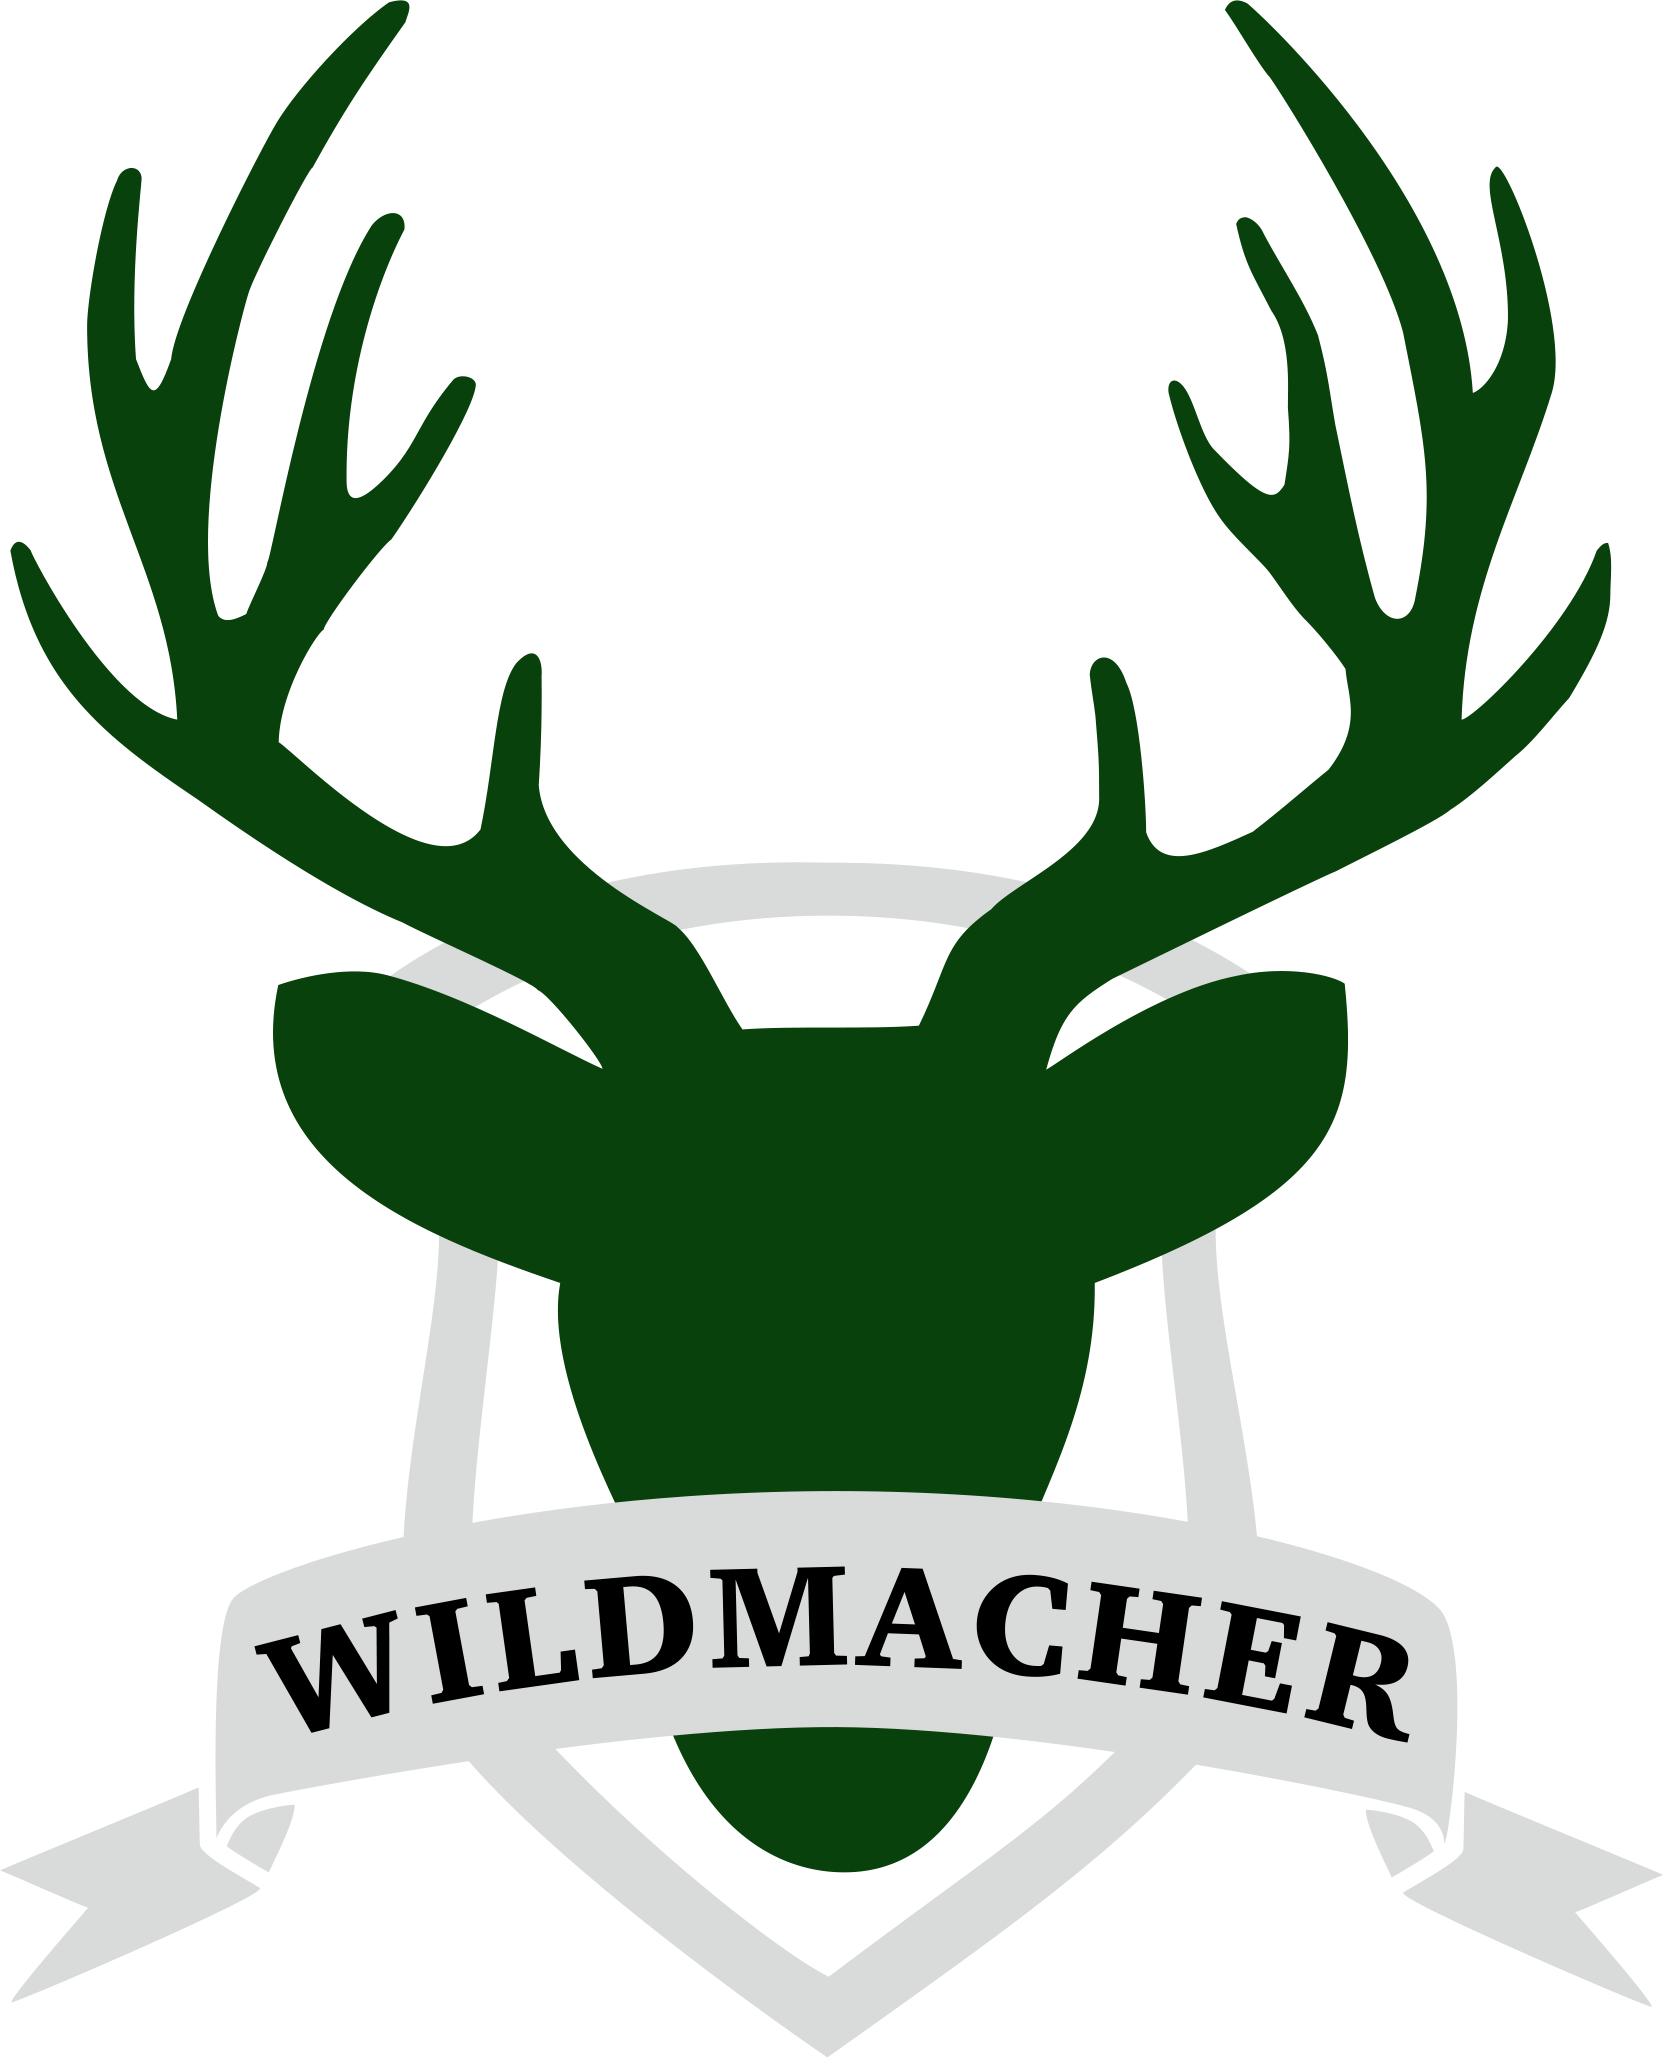 Wildmacher